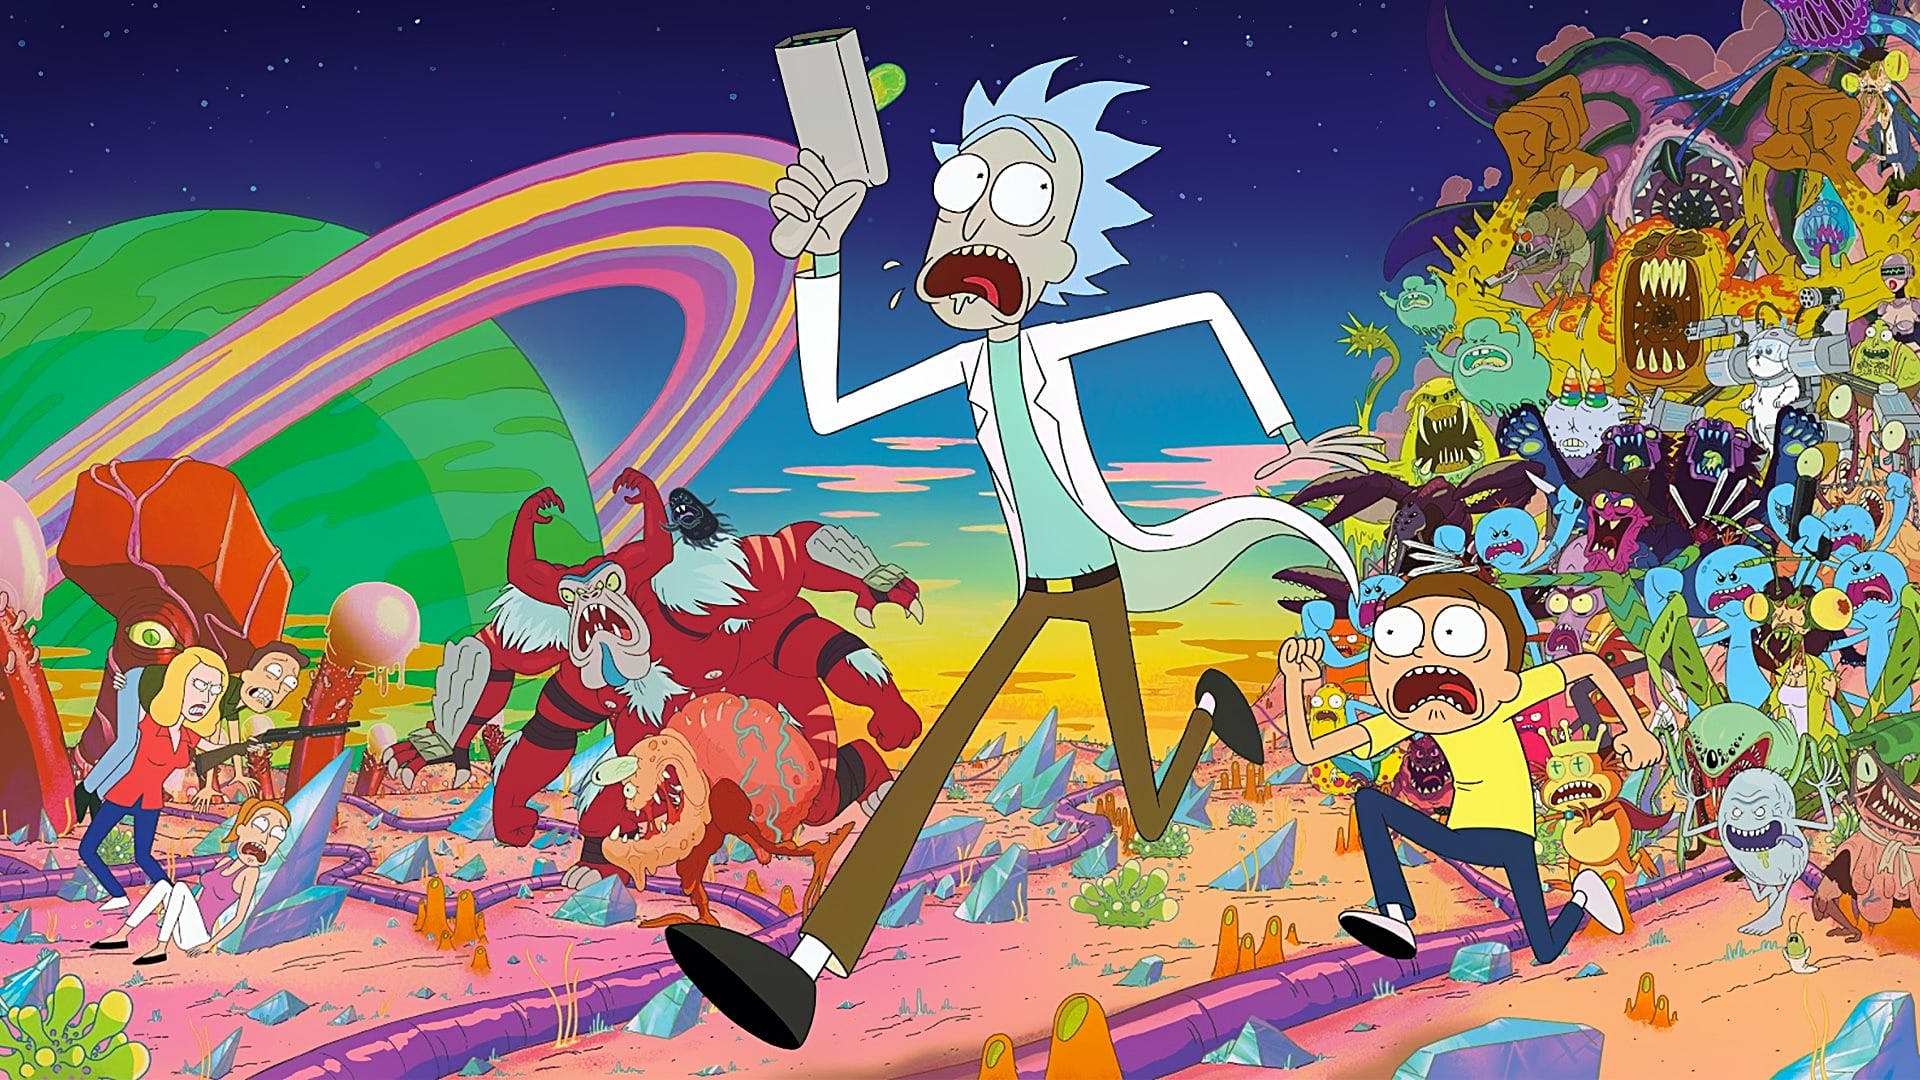 Fans are Demanding Release Date for Rick and Morty Season 4 Episode 6